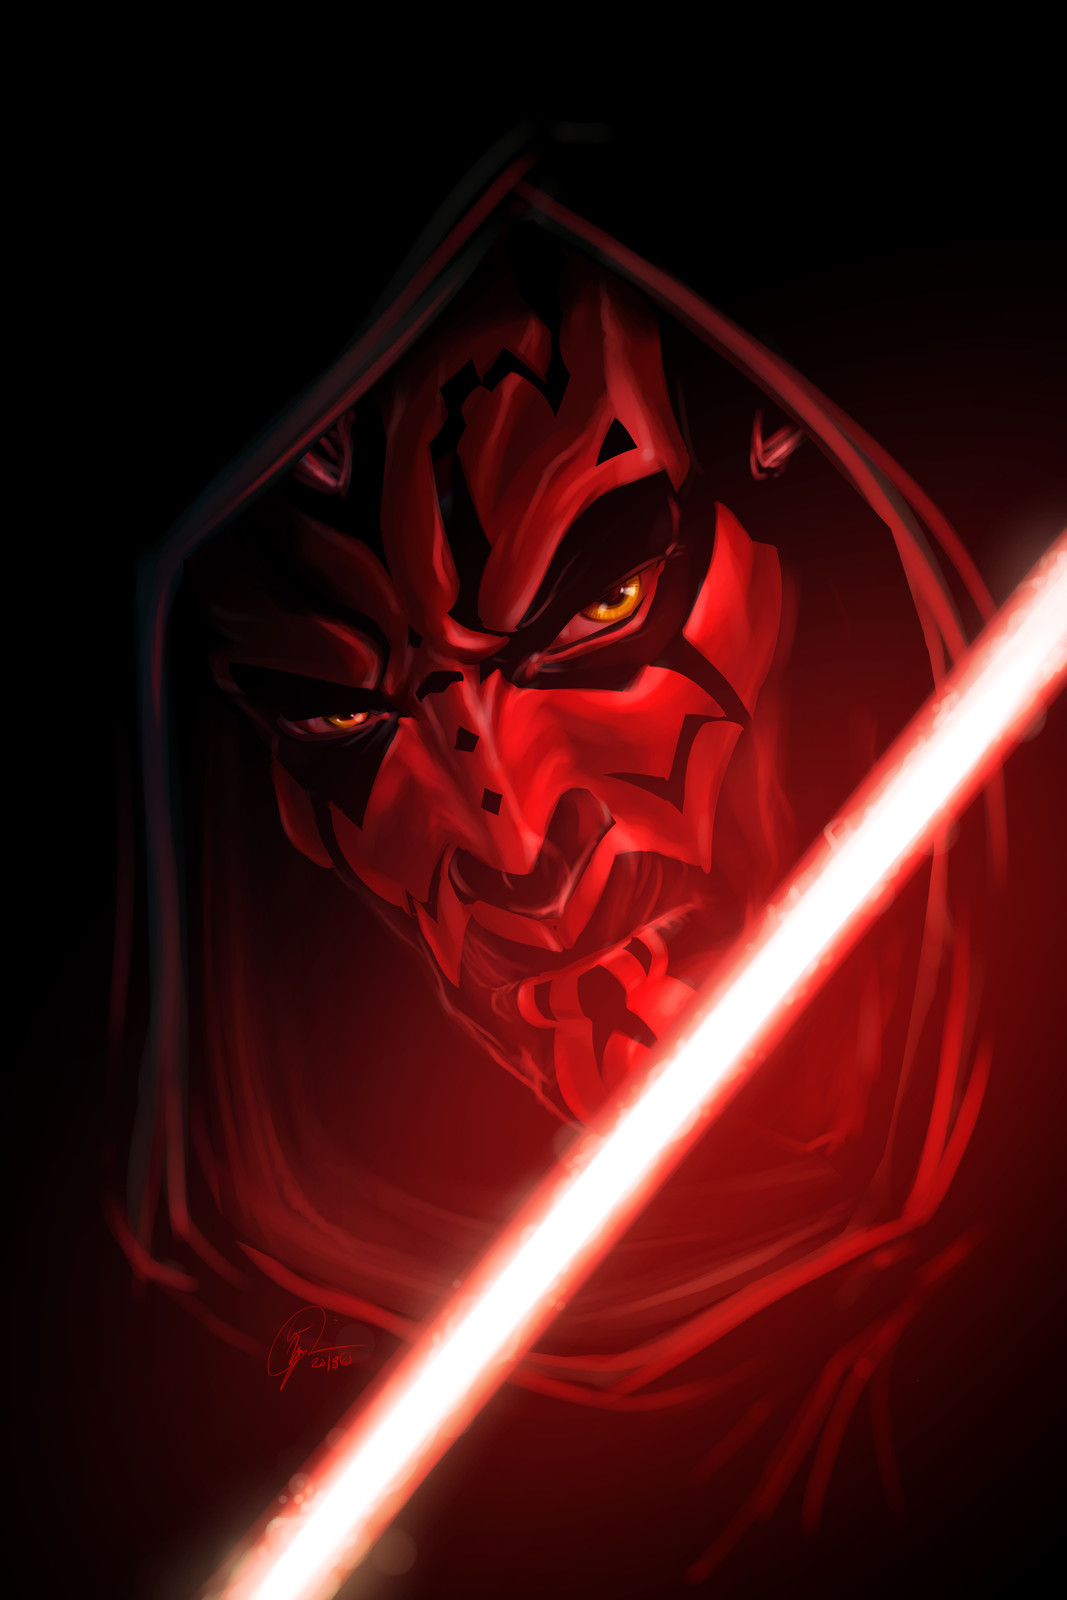 Darth Maul, for Star Wars Day (May 4th)